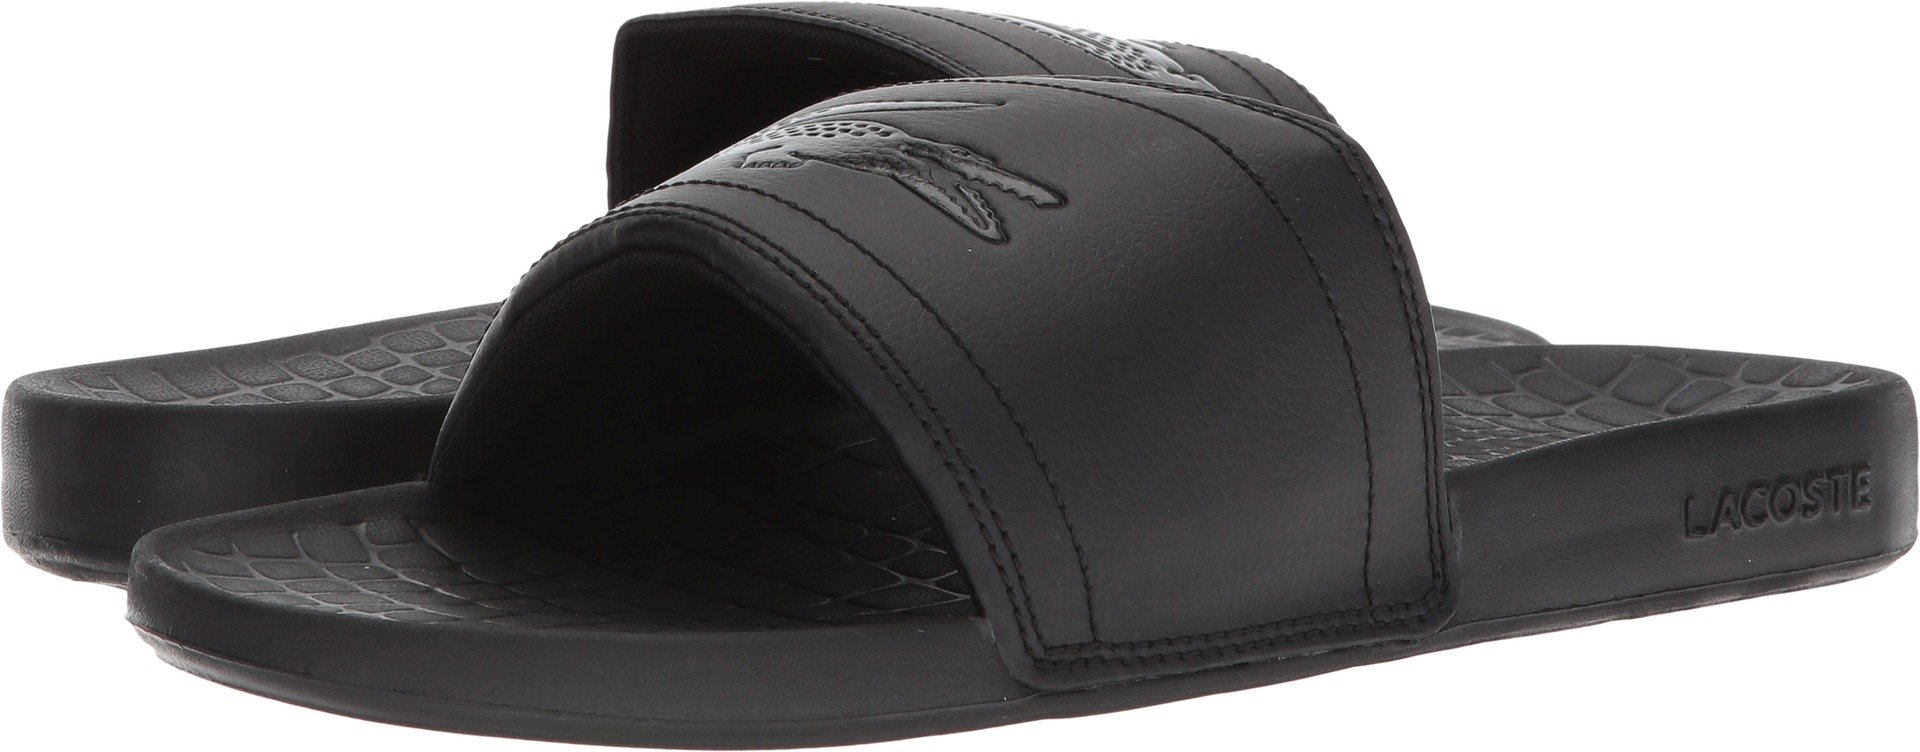 86cd0f976a5d Lacoste Men s Fraisier Slides